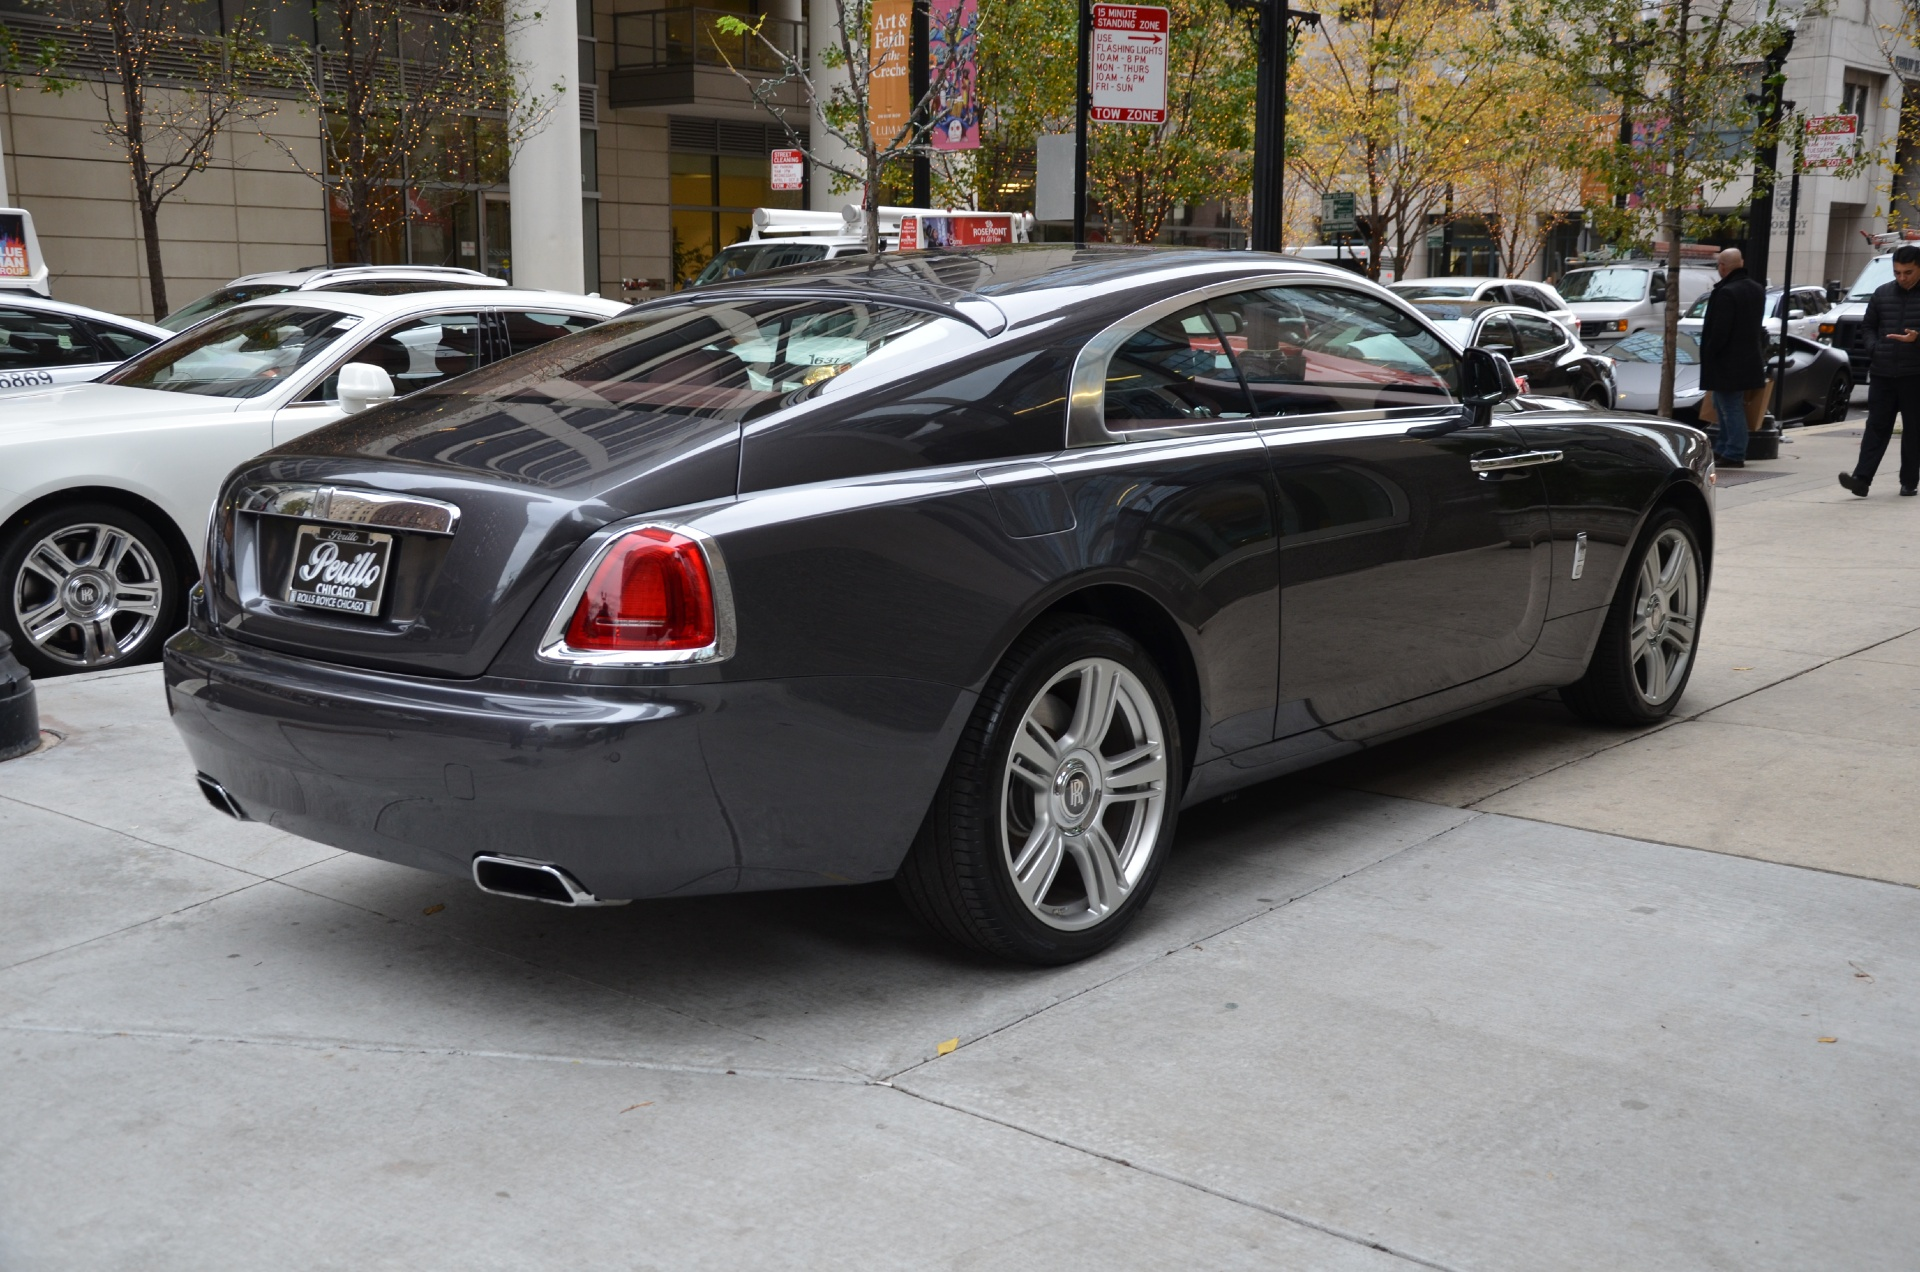 2014 rolls royce wraith stock r133a for sale near chicago il il rolls royce dealer. Black Bedroom Furniture Sets. Home Design Ideas